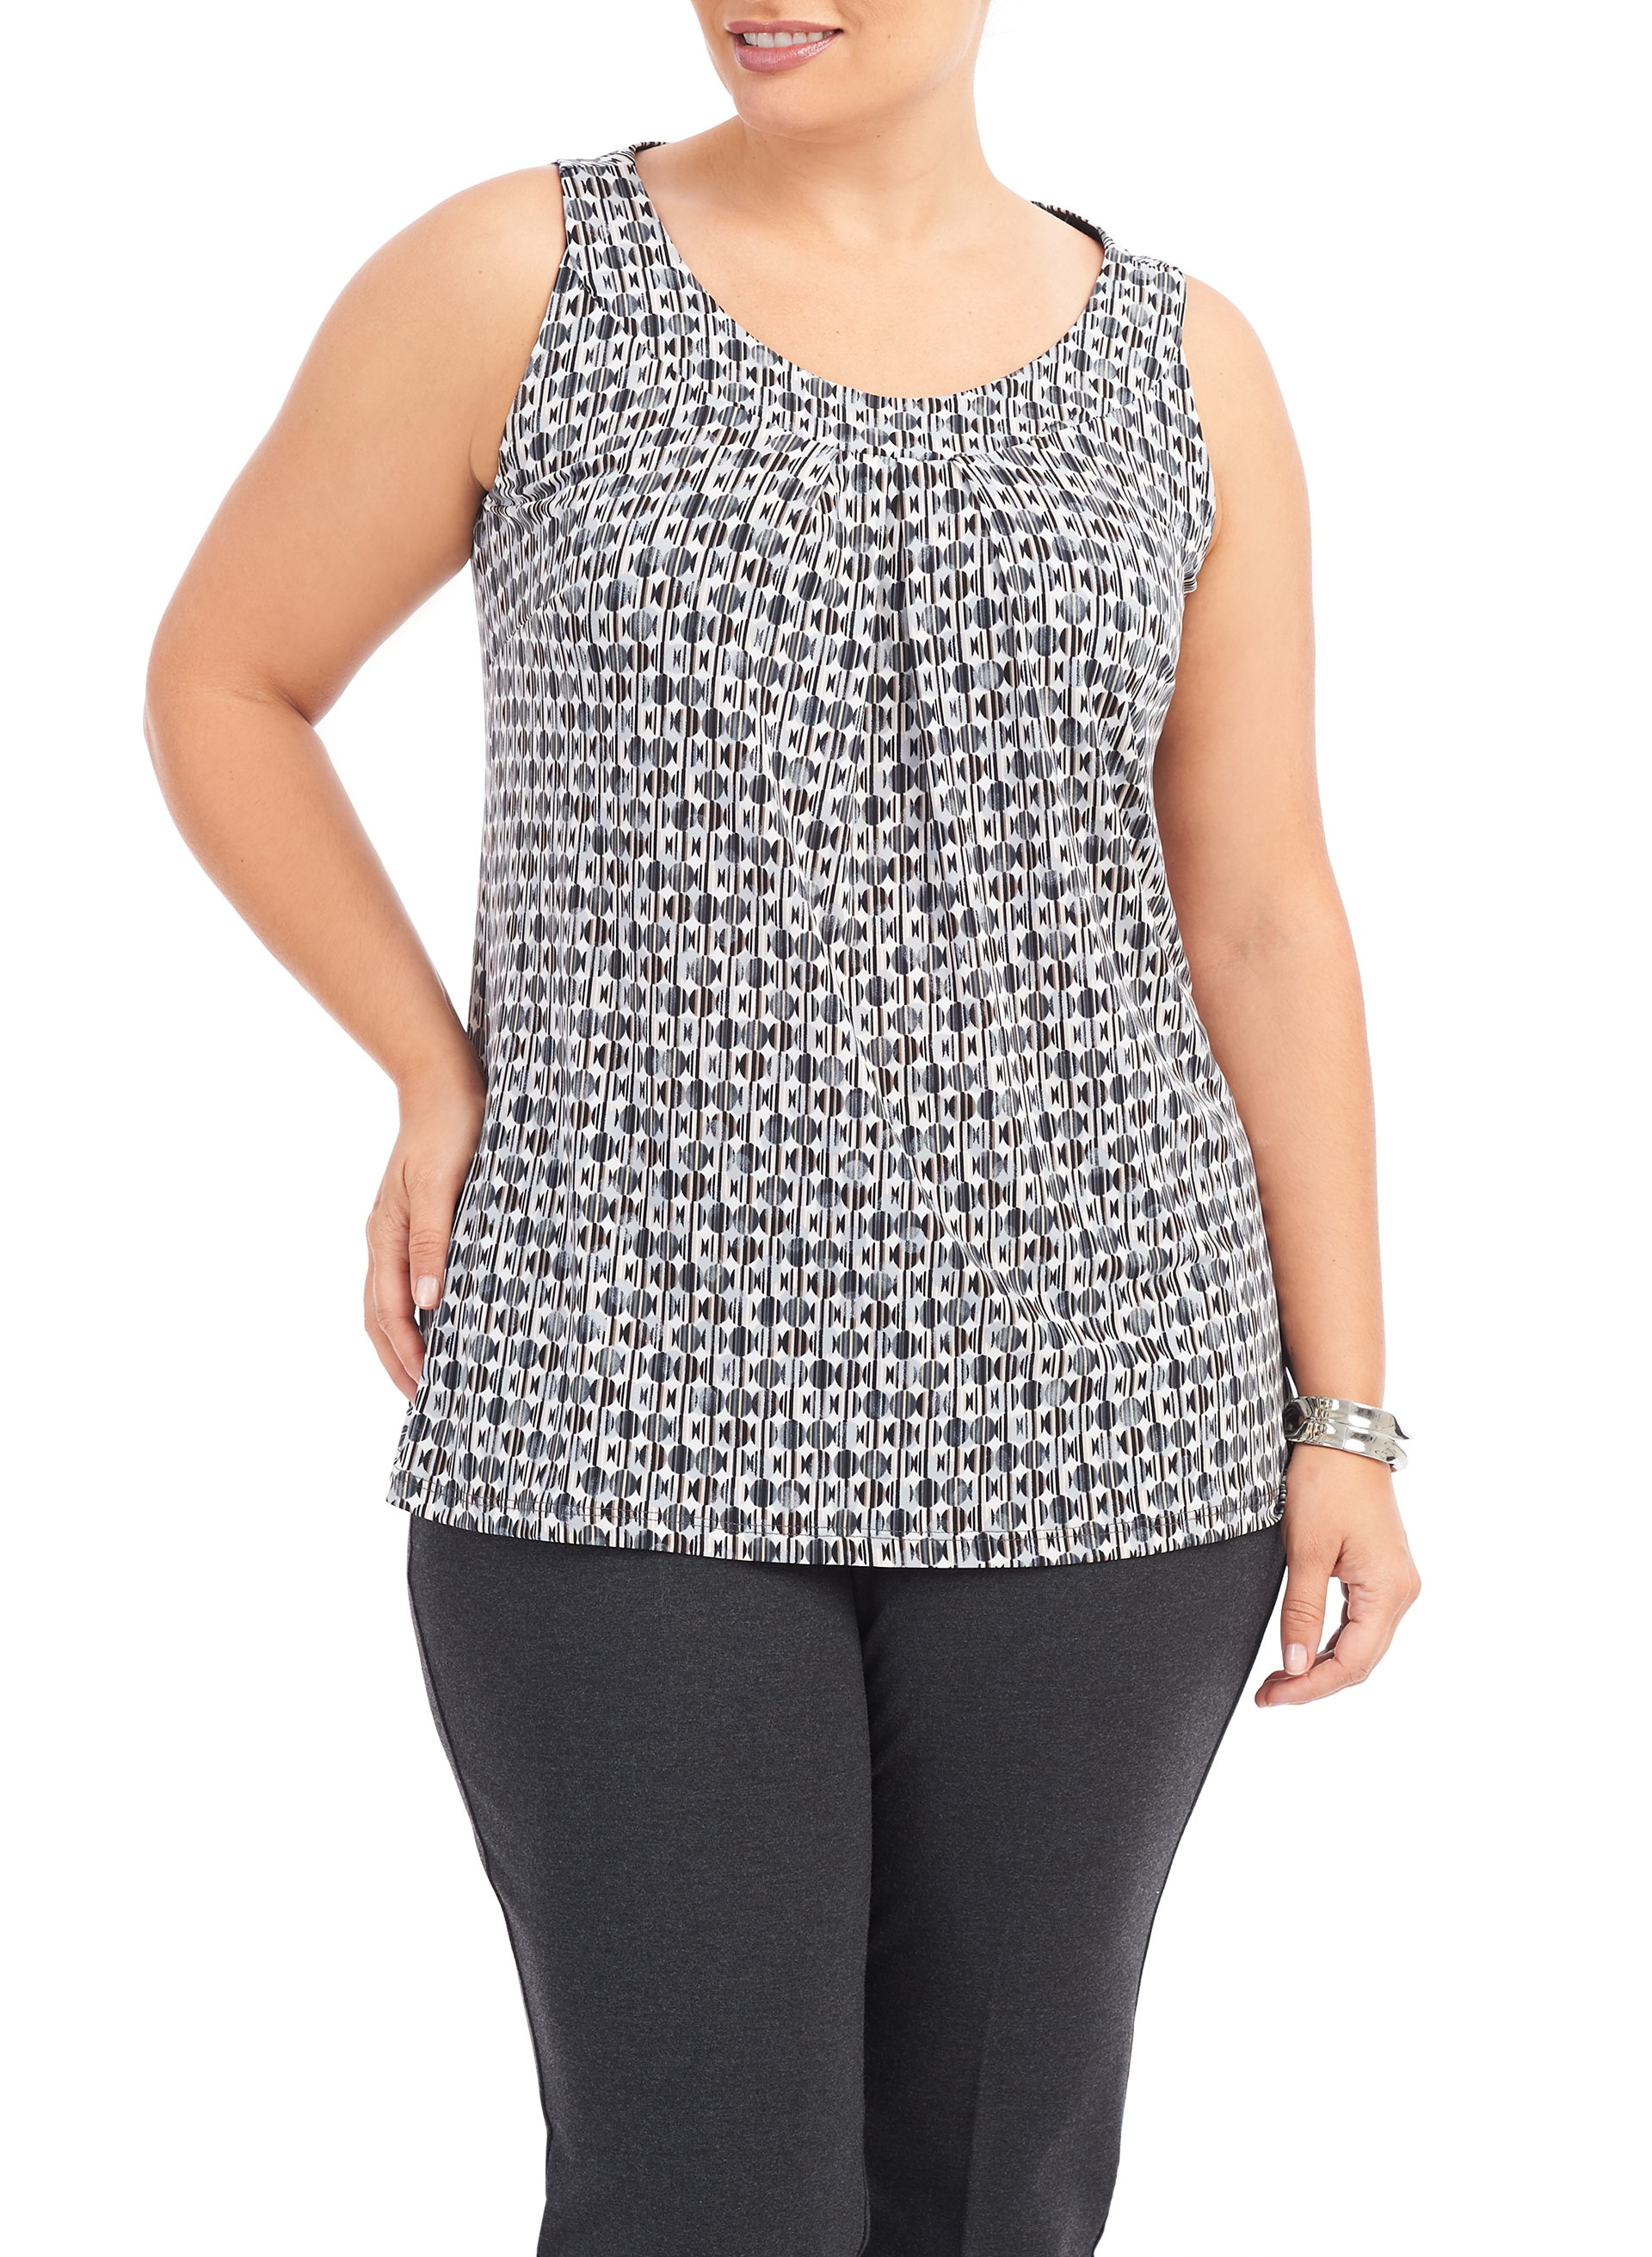 Sleeveless Cleo Neck Top, Grey, hi-res